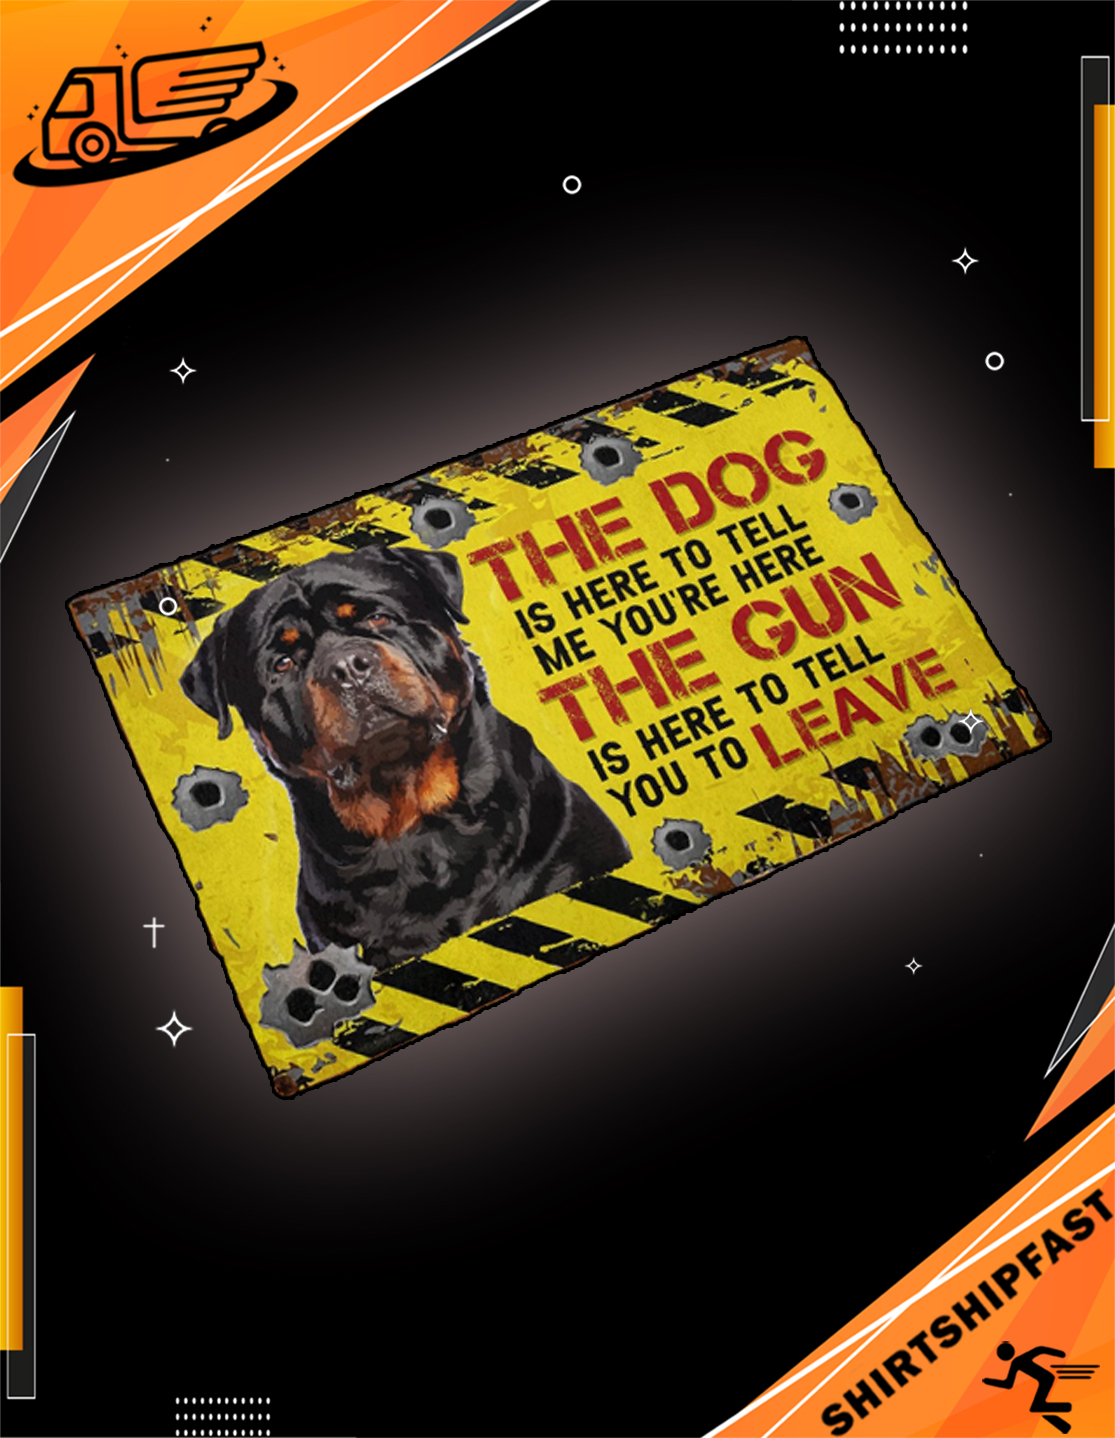 Rottweiler The dog is here to tell me you're here The gun is here to tell you to leave doormat - Picture 3